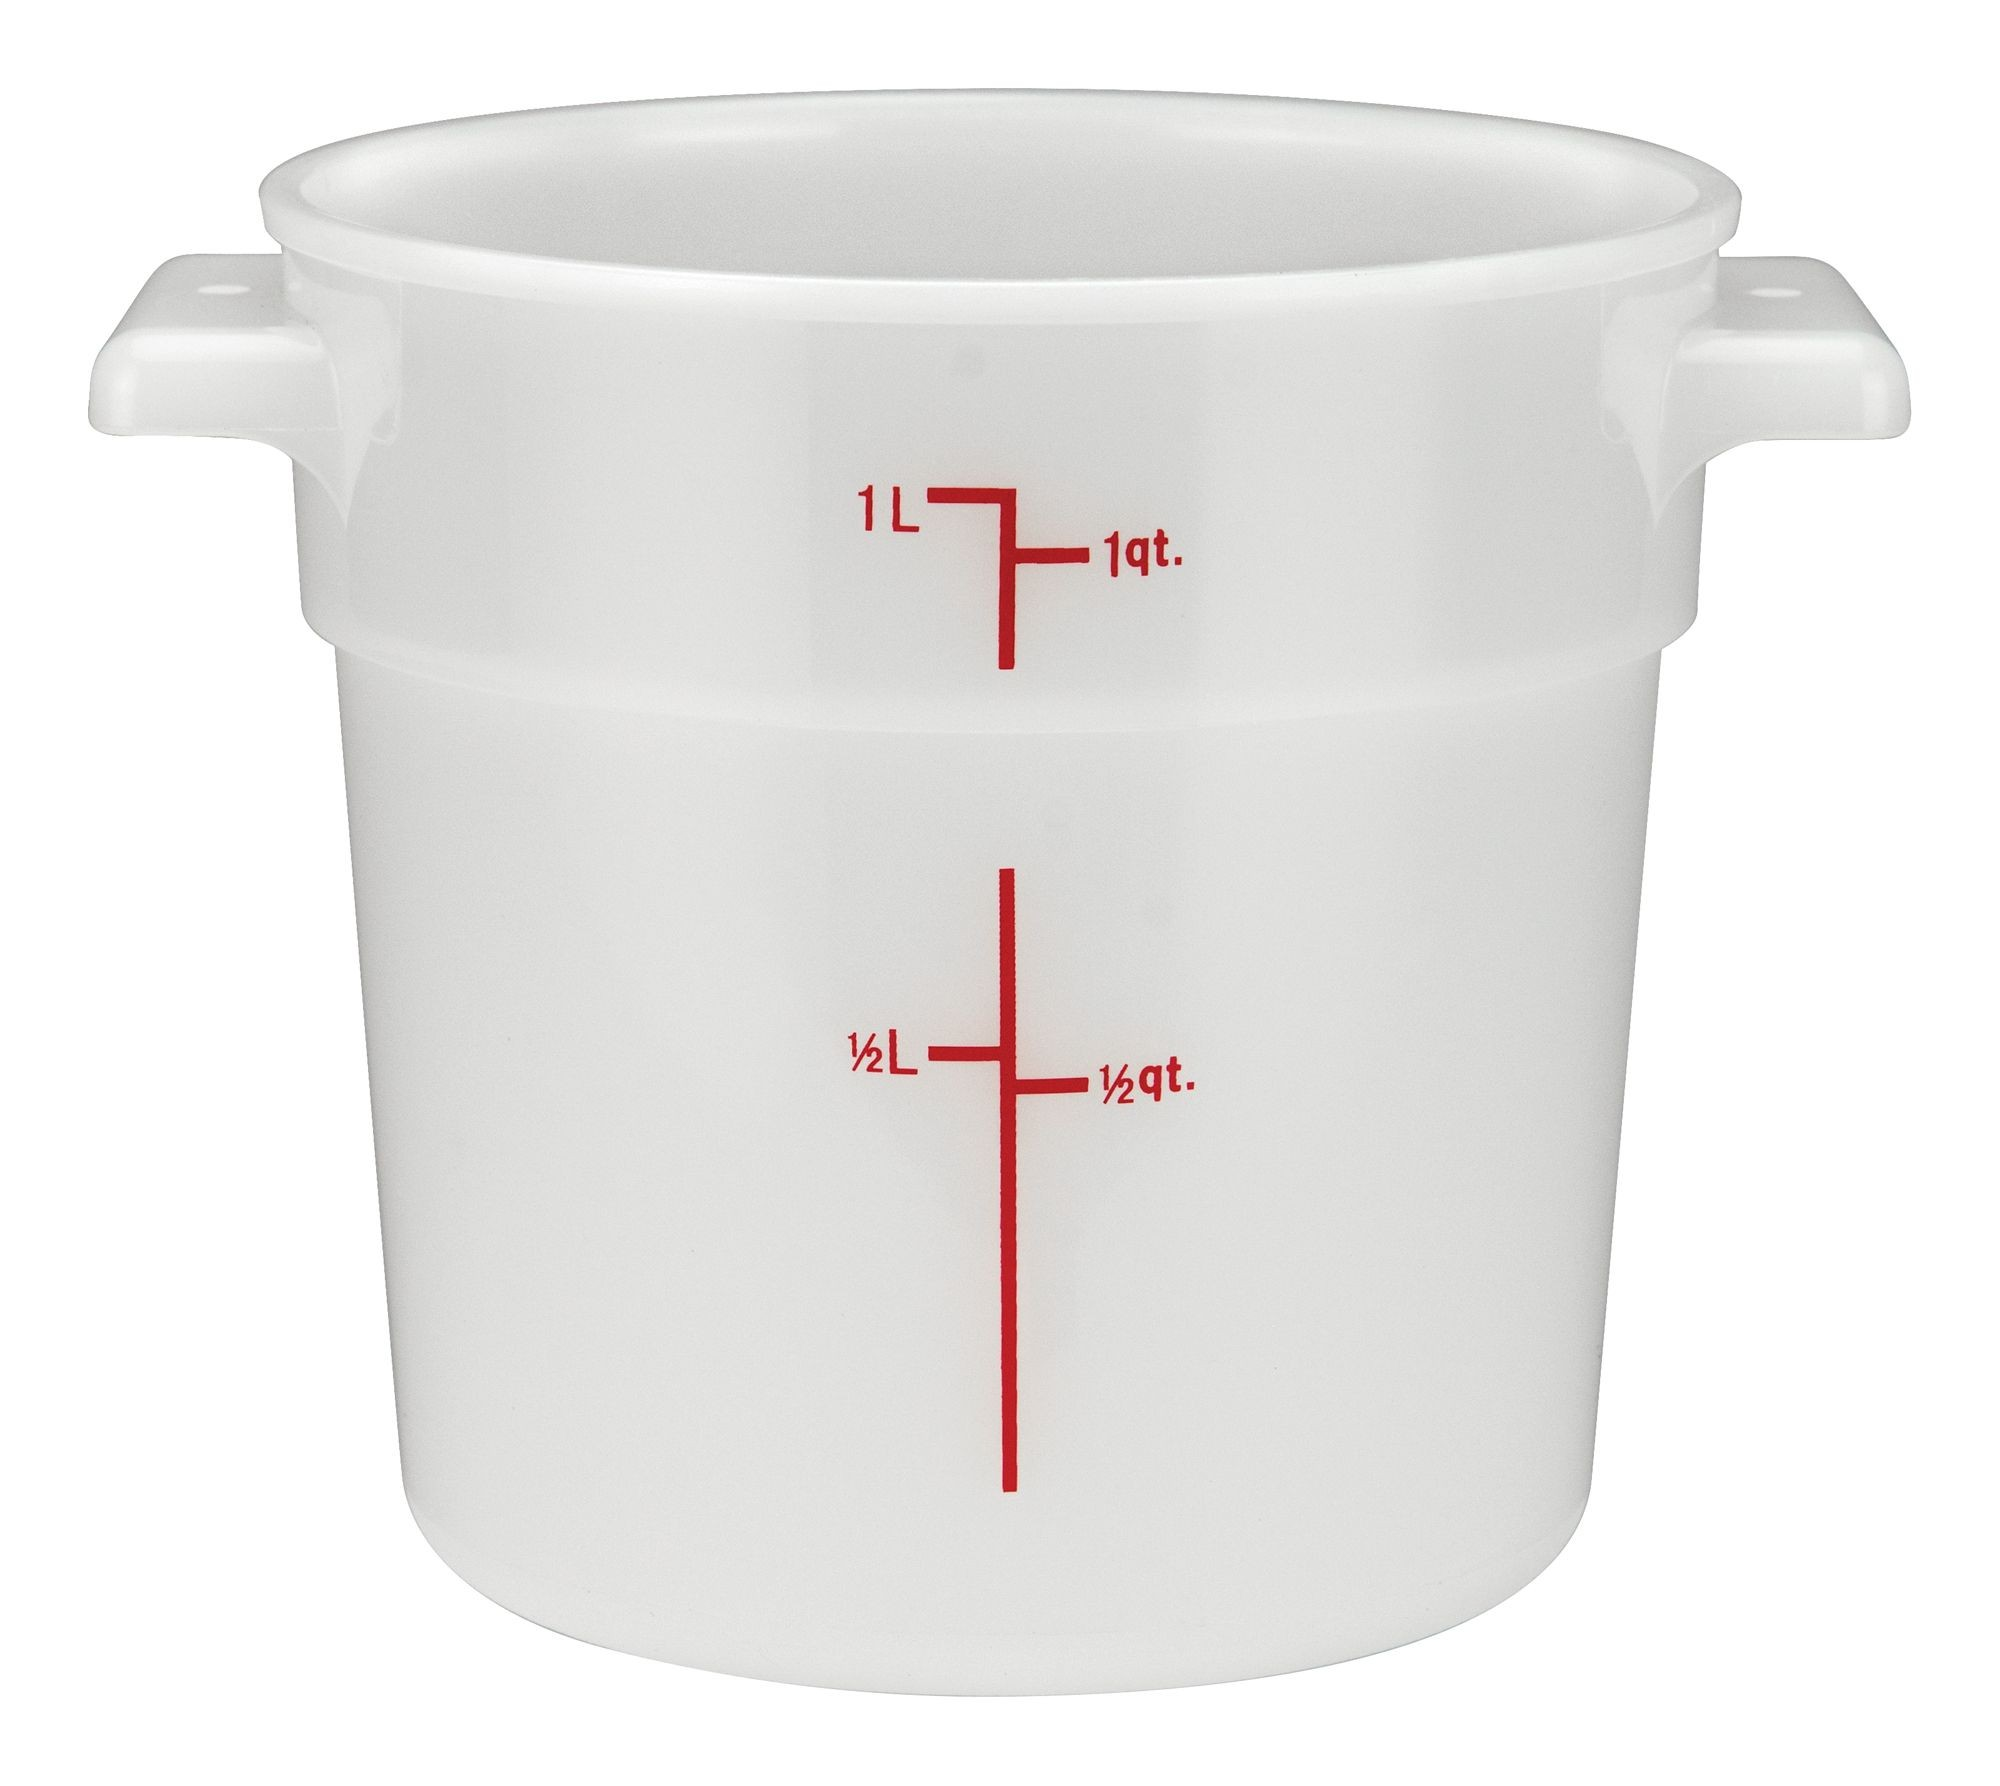 Winco PPRC-1W White Round Storage Container, 1 Qt.